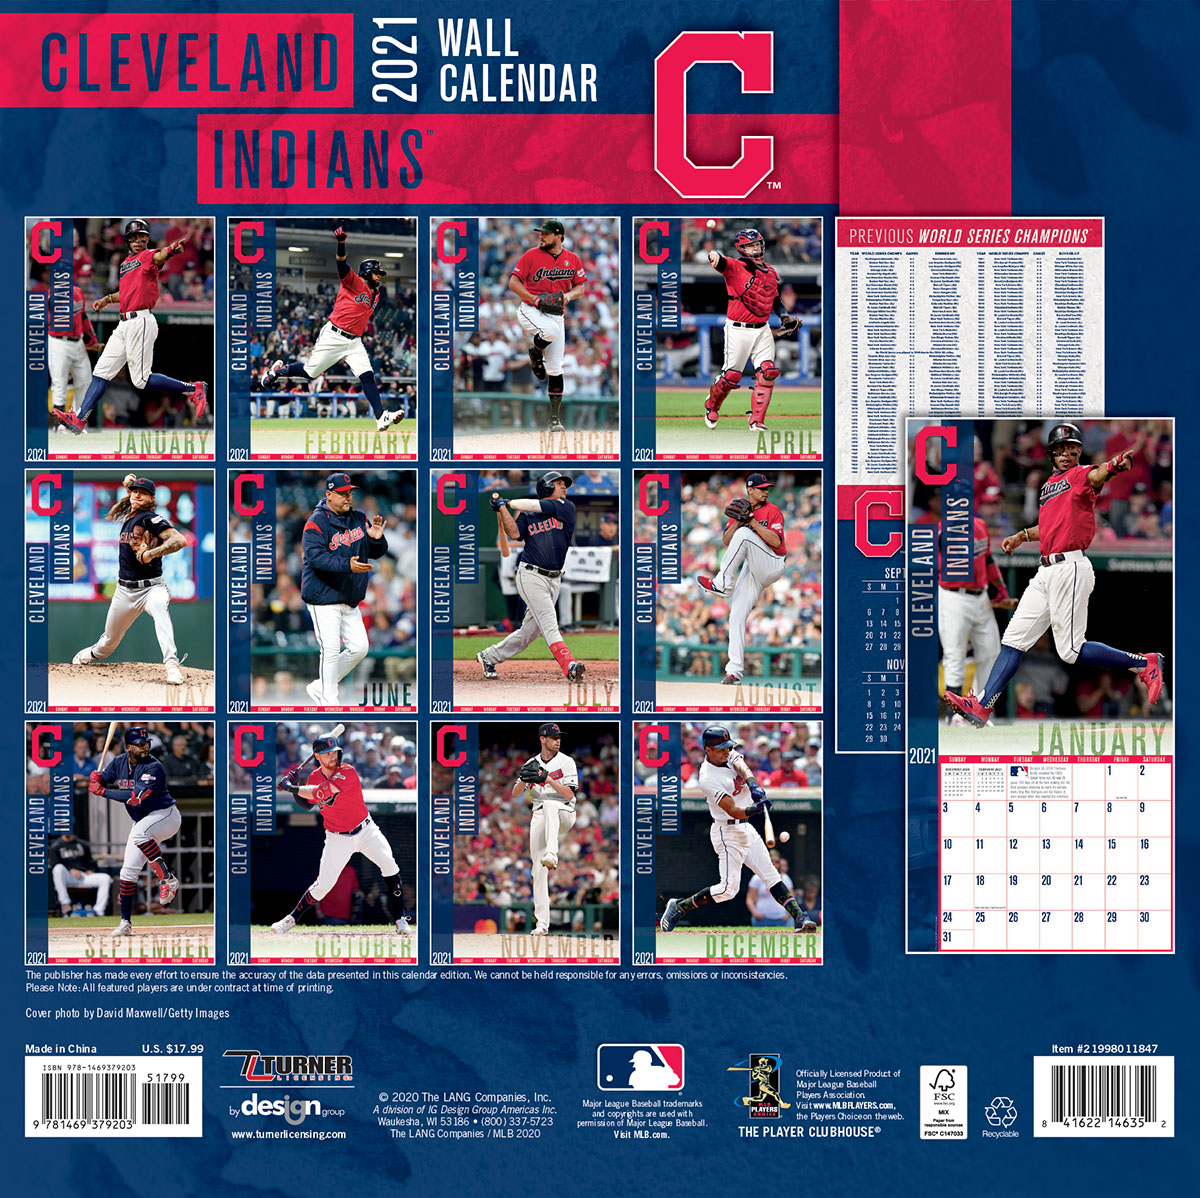 Cleveland Indians 2019 Mini Wall Calendar Buy At KHC Sports